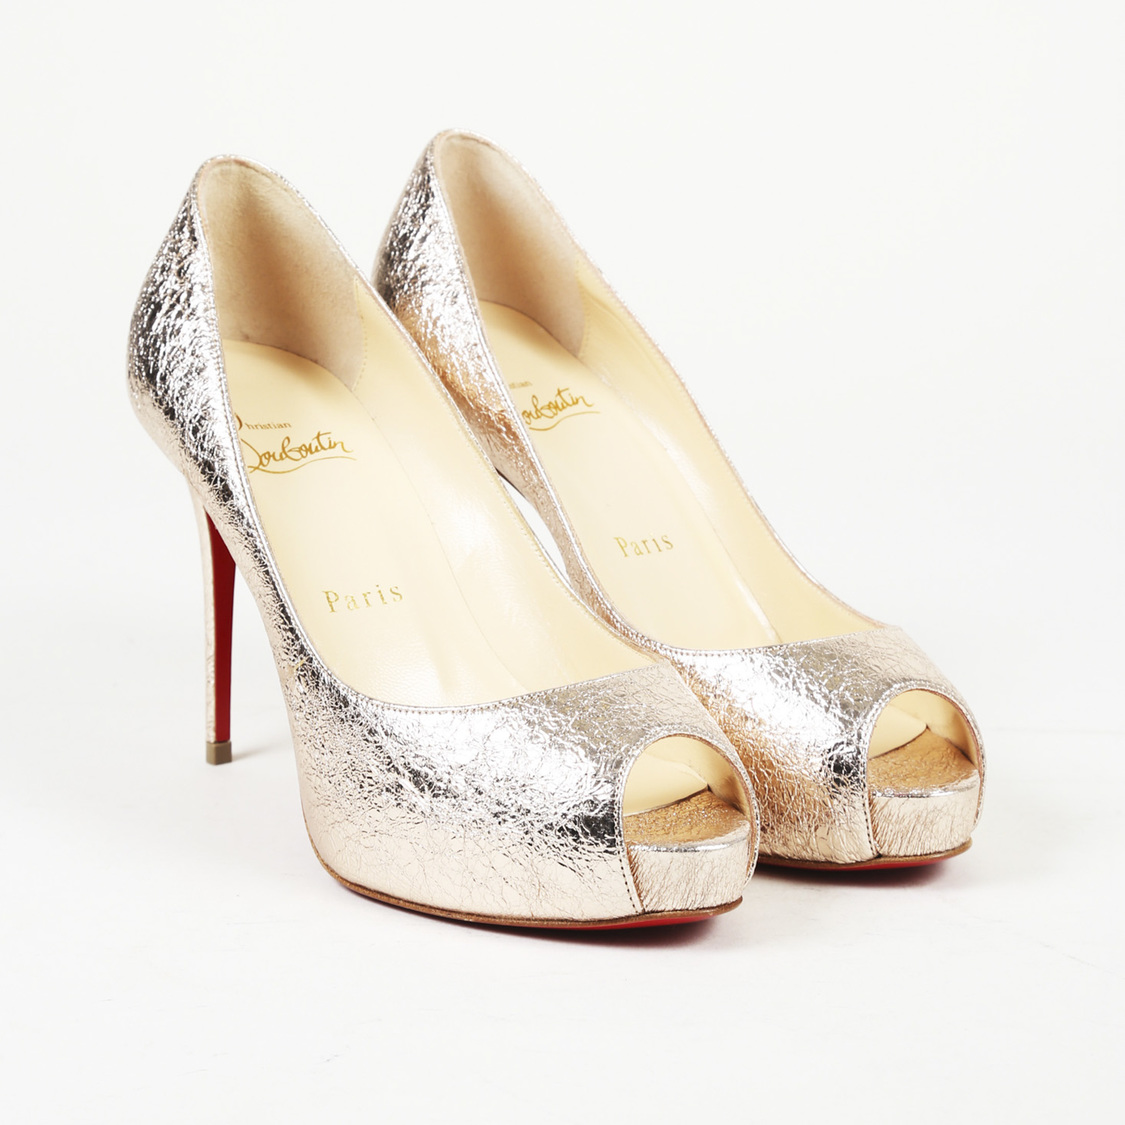 half off 36253 46970 Details about Christian Louboutin Leather